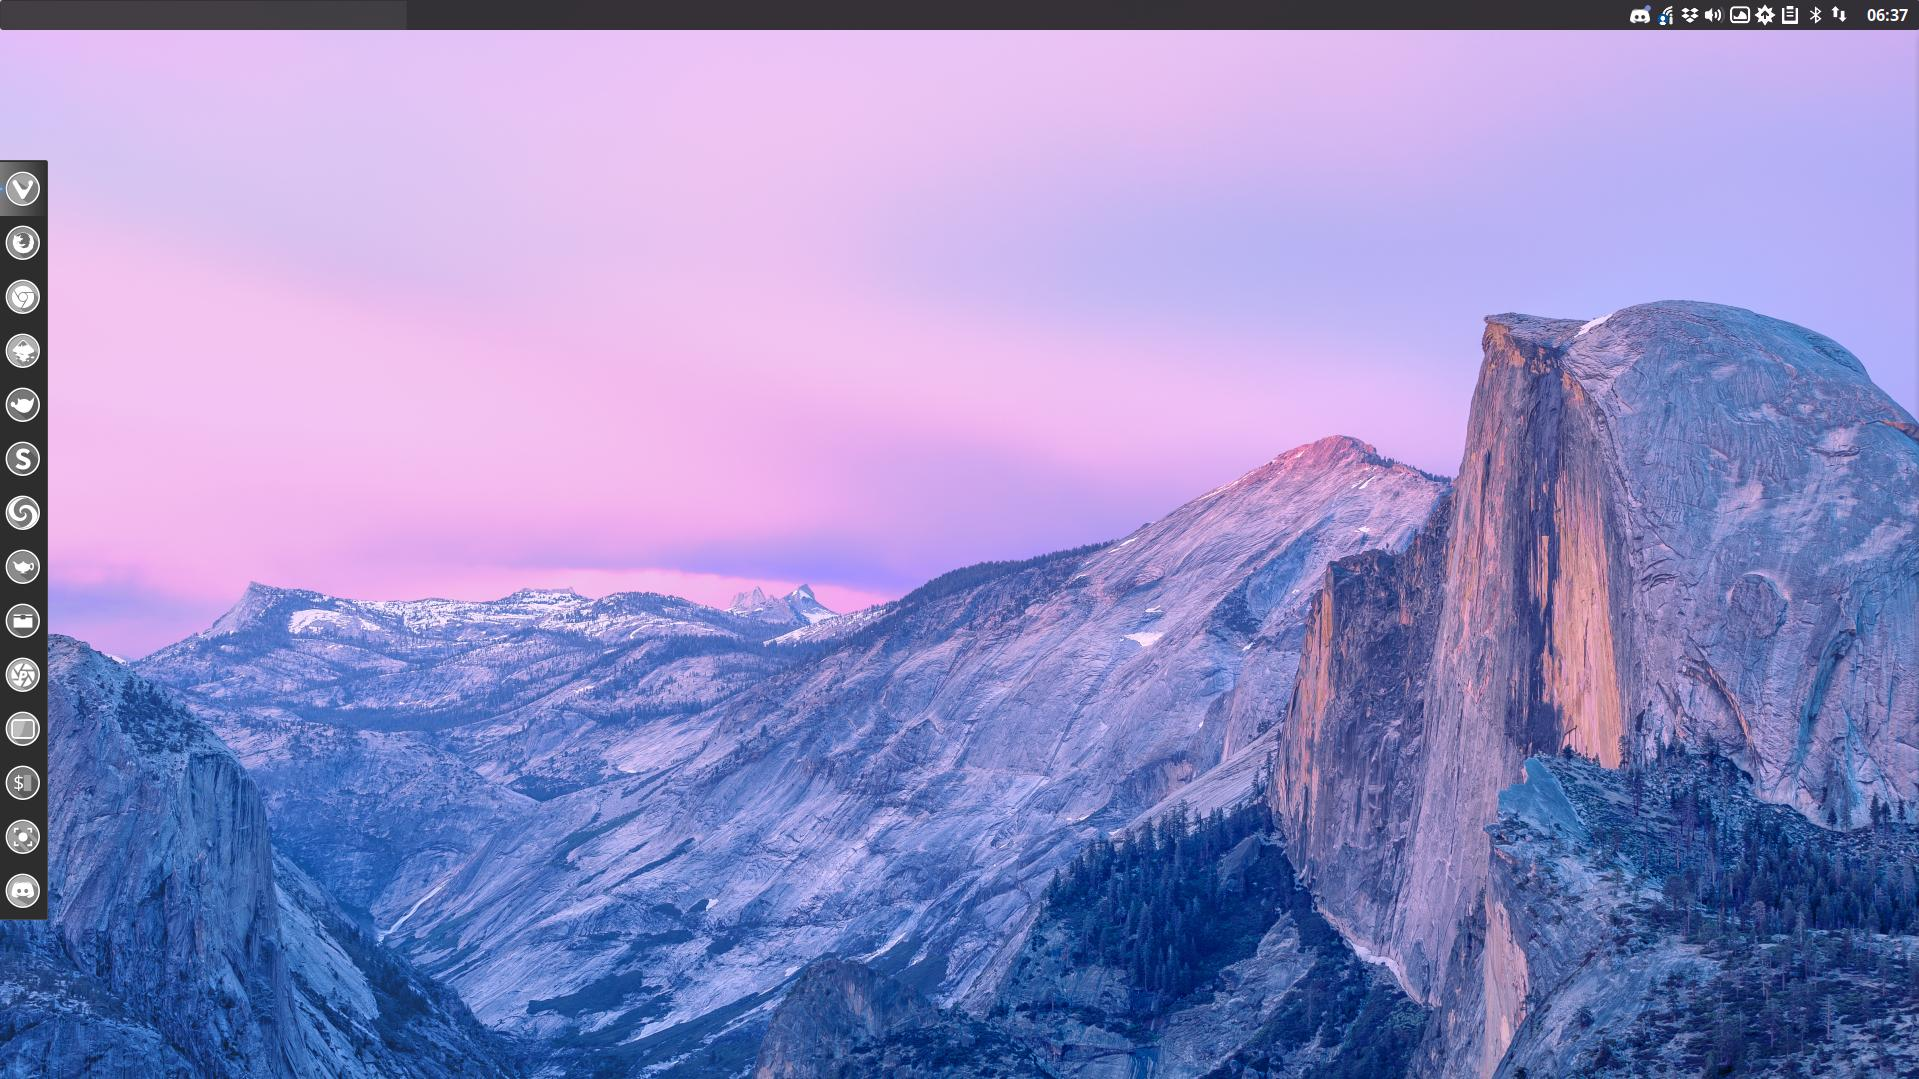 How to quickly change the tint2 theme to suit your needs and save it for later